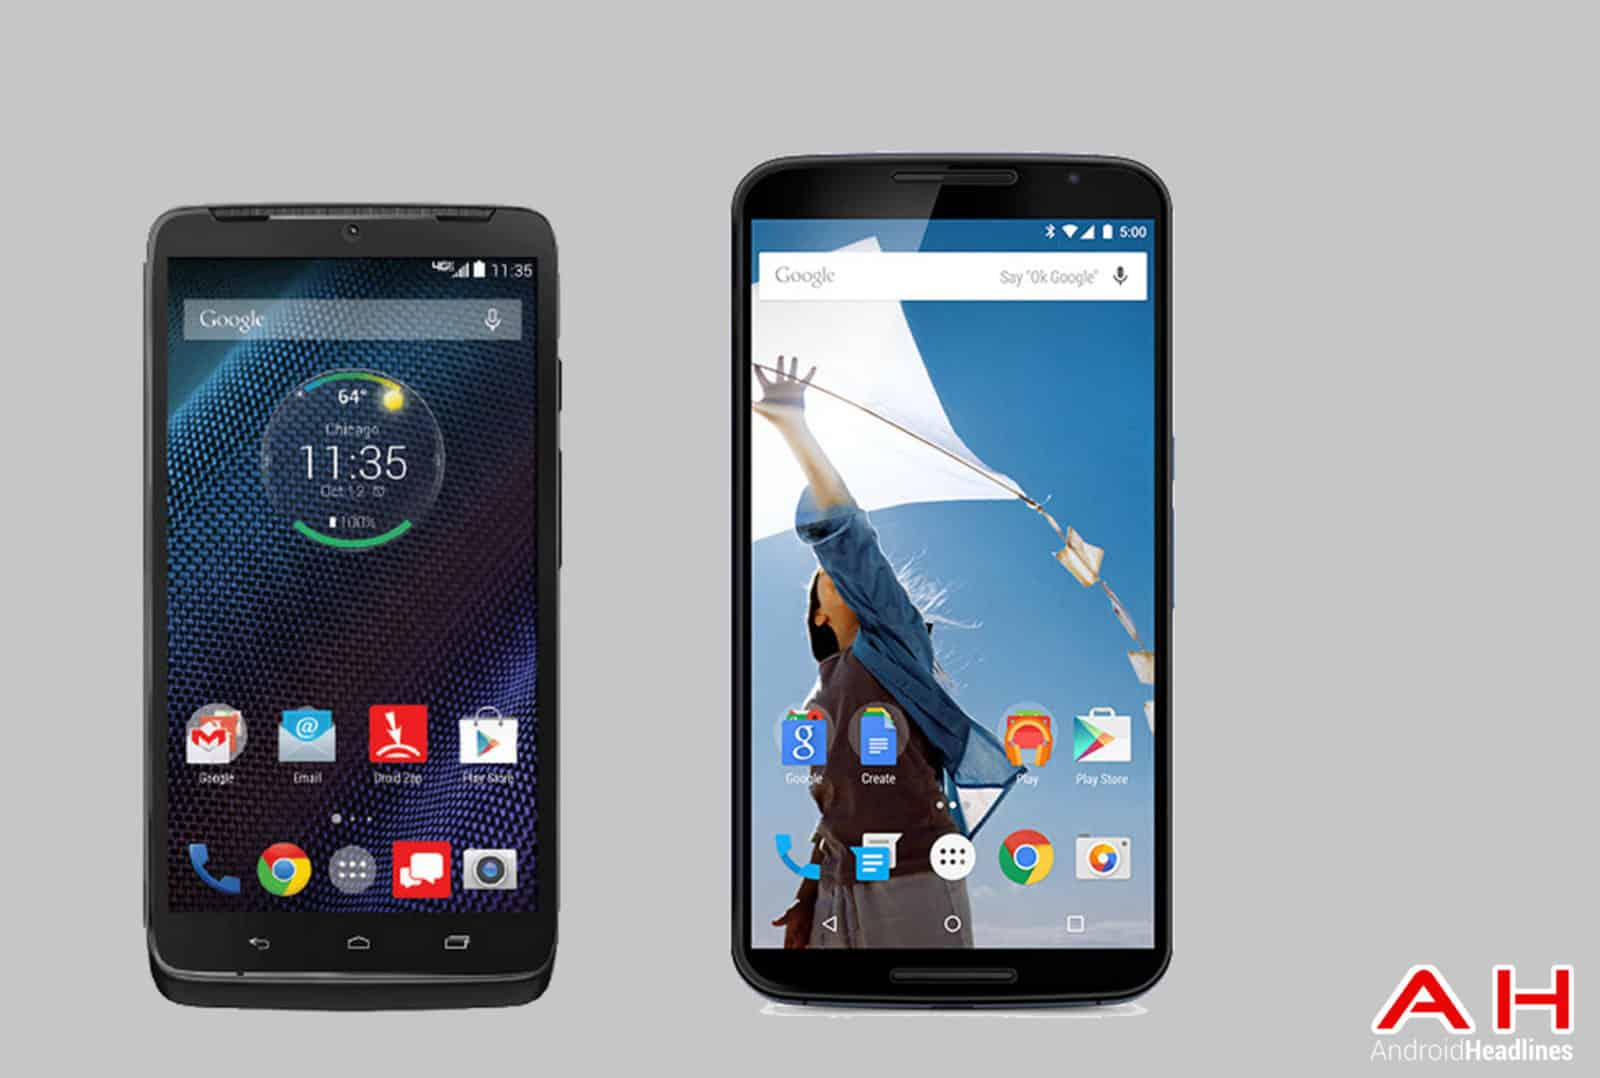 Droid Turbo vs Nexus 6 cam AH